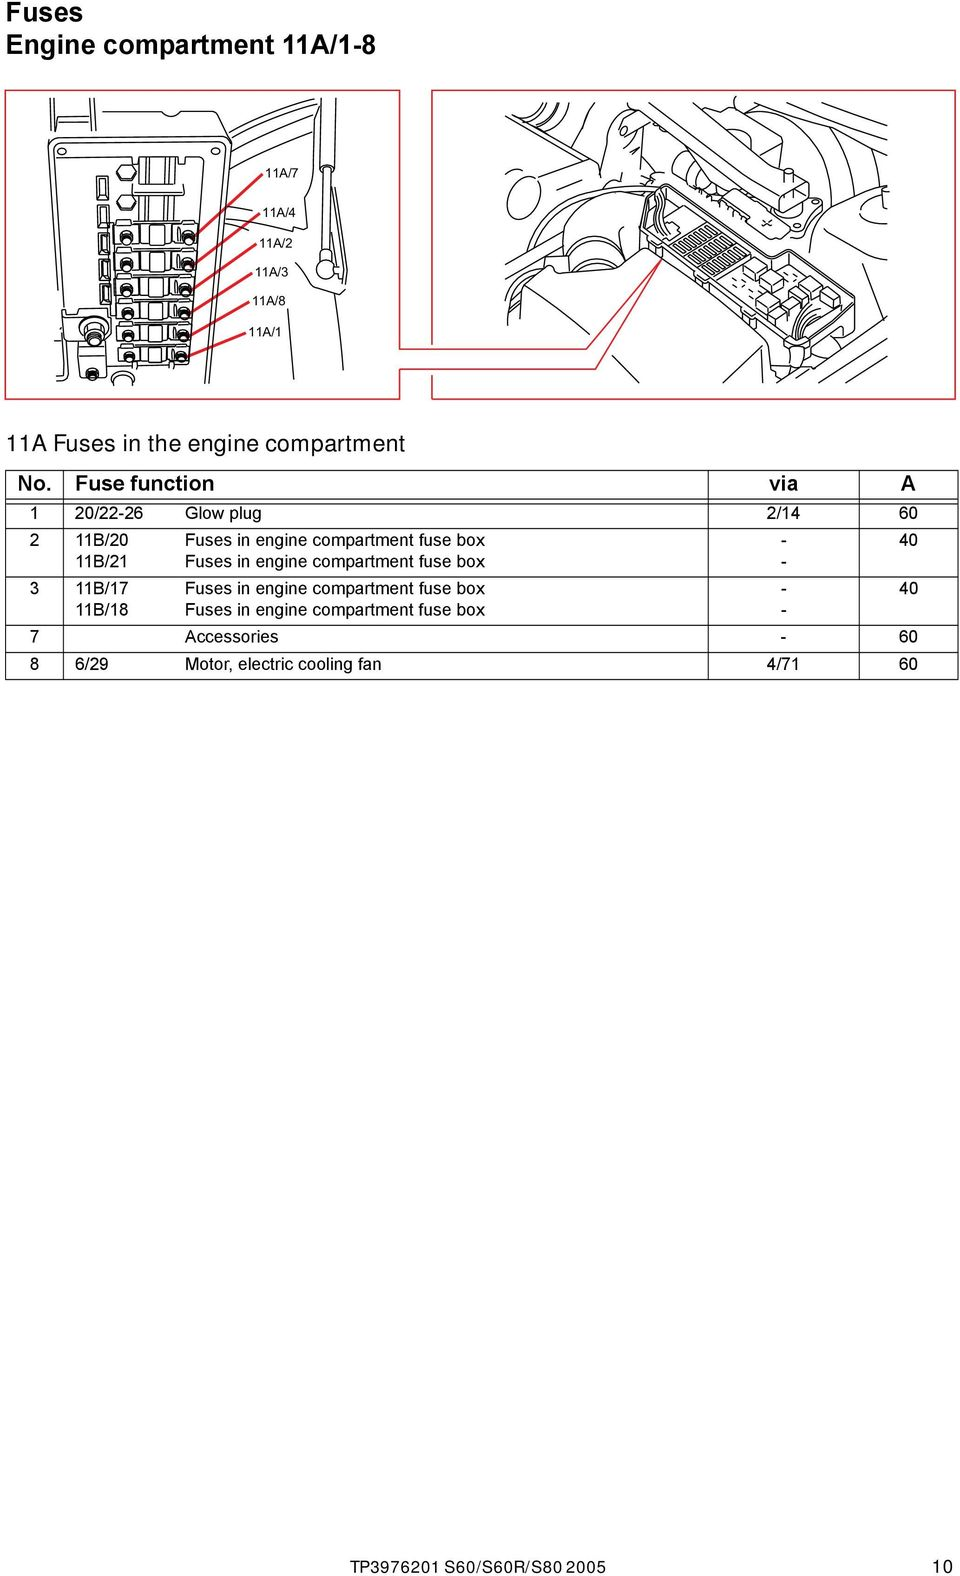 Frame Contained Pdf File Click Here To View 2002 Mitsubishi Diamante Engine Compartment Fuse Box Diagram In B Fuses 8